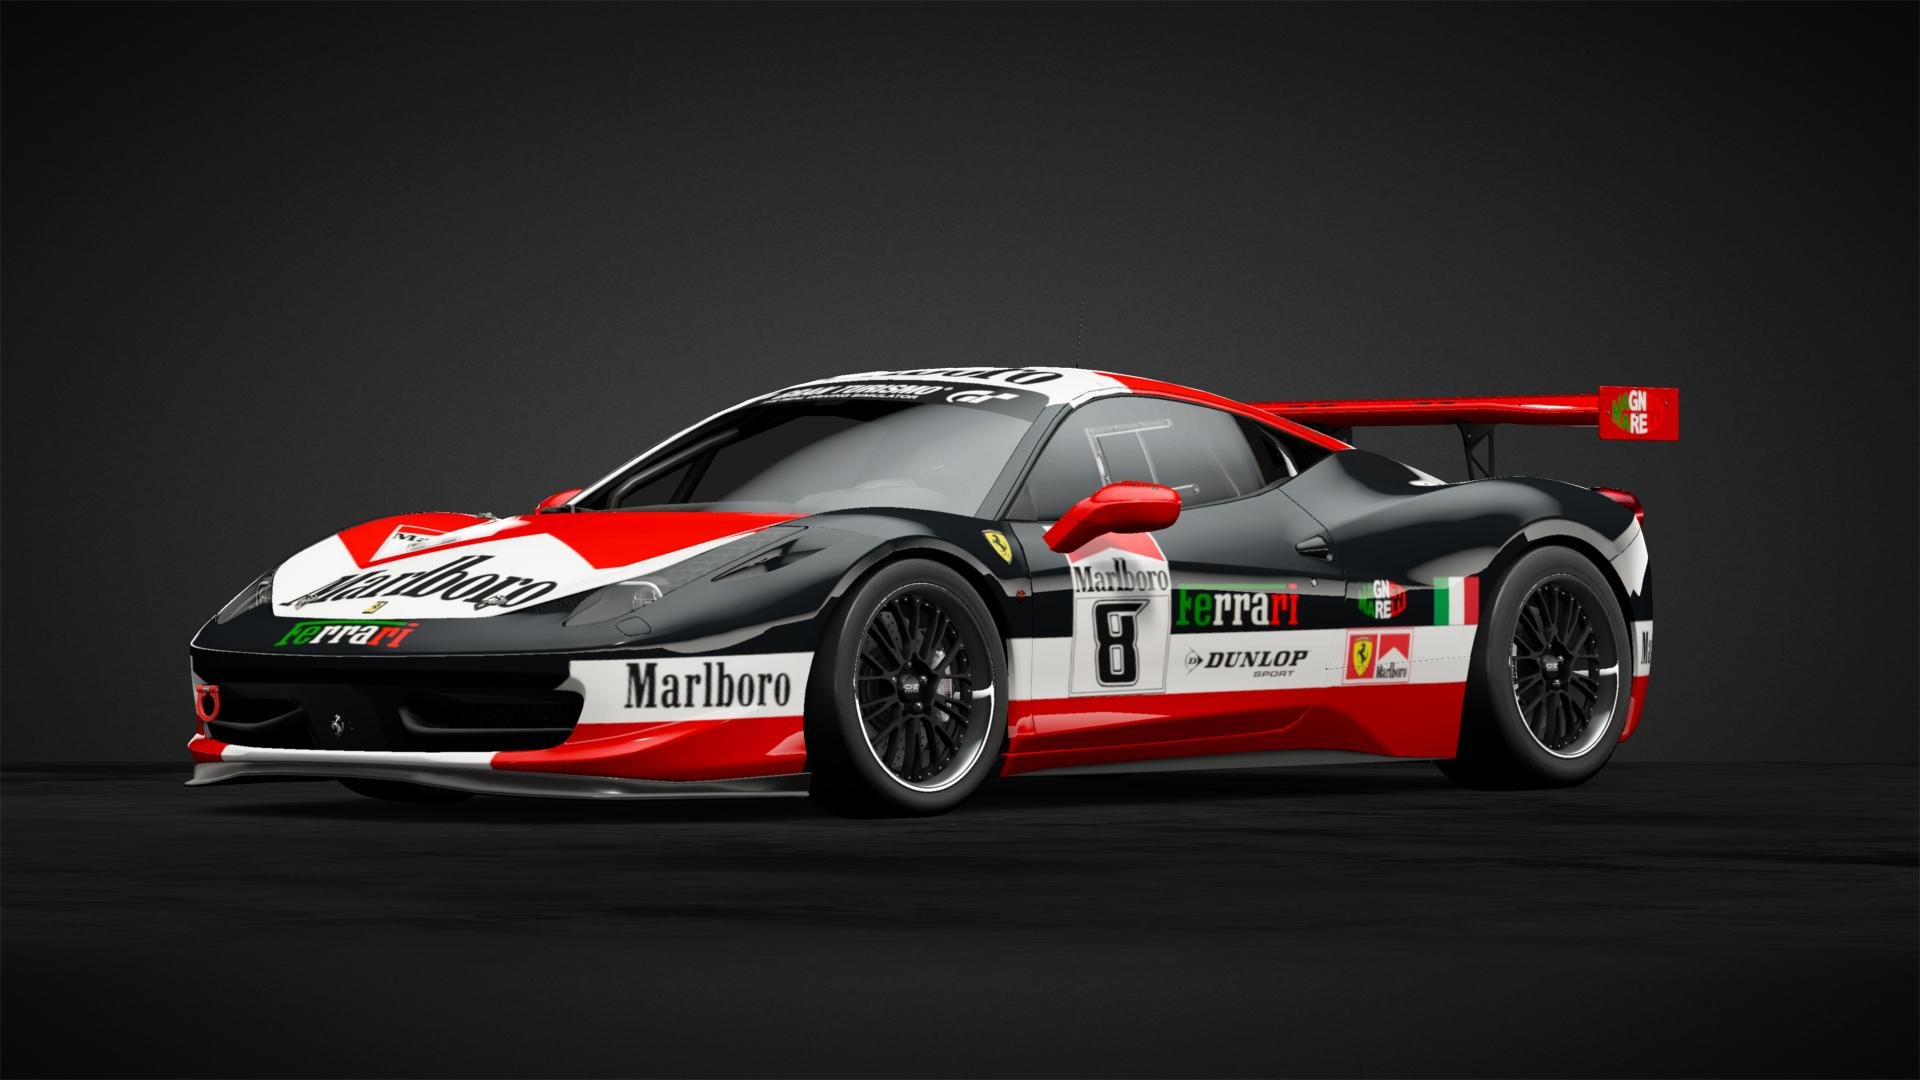 Malbro 8 Car Livery By Insert Coin 08 Community Gran